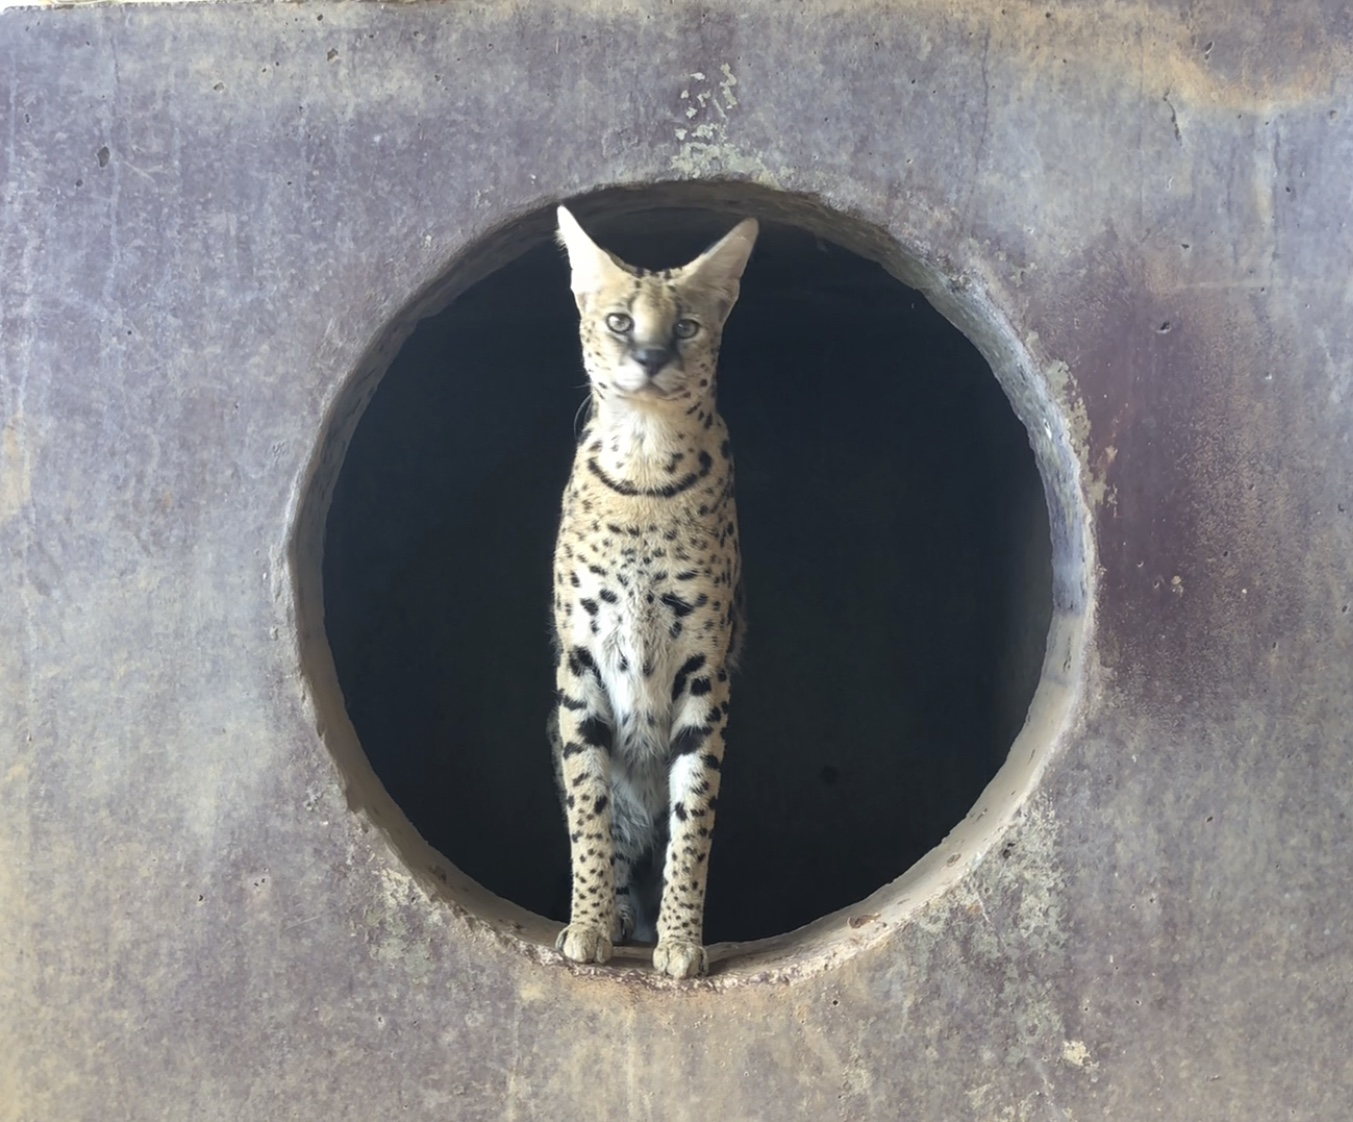 Meet Kevin the Serval!